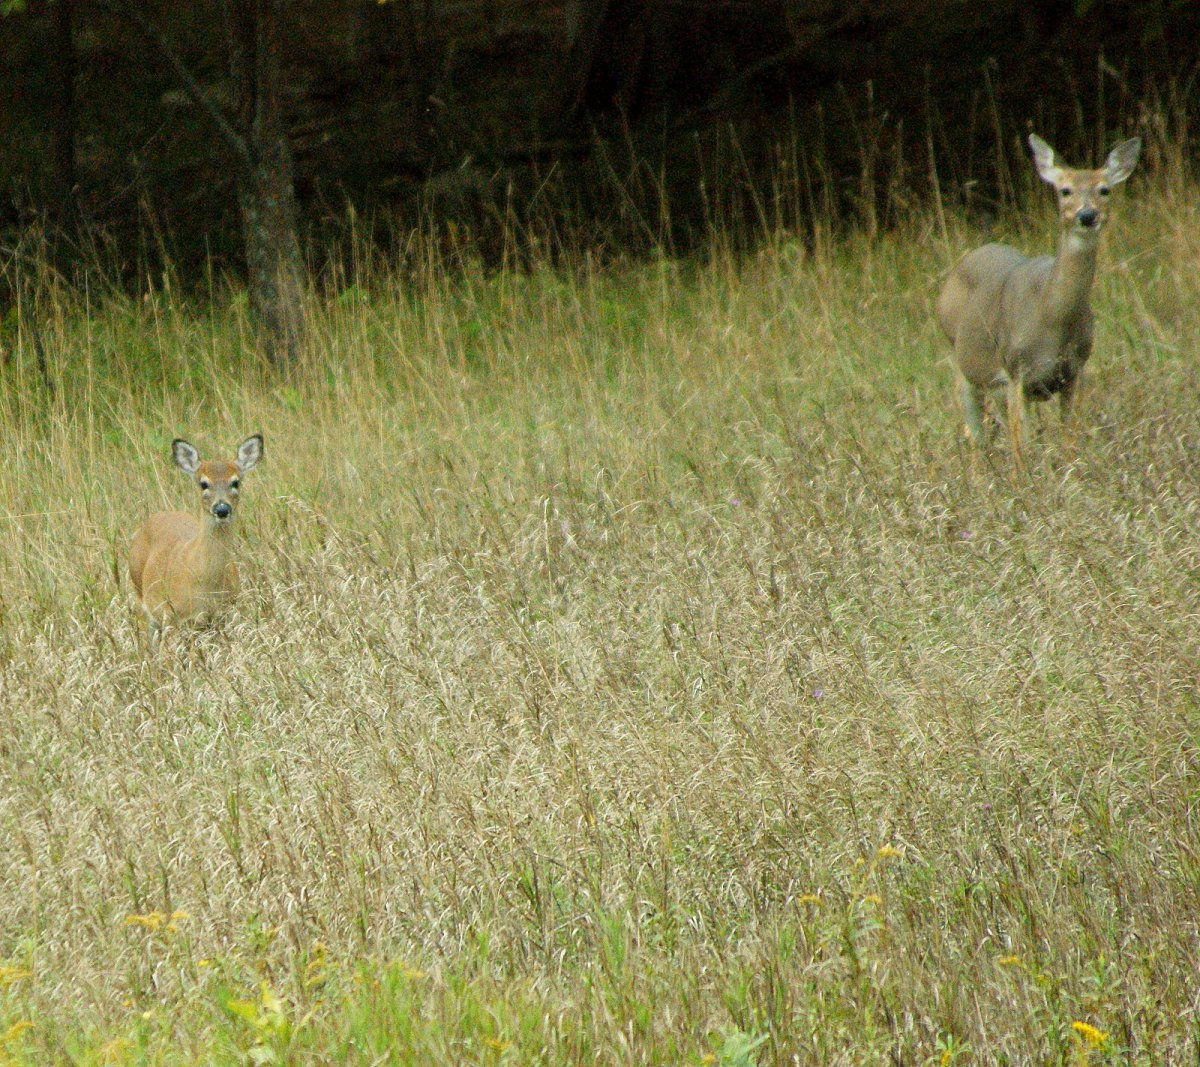 The reason these two look like, well, deer caught in the headlights, is that as I was taking this shot, two deer bow hunters dressed in camouflage walked by on the way to  their hunting spot.